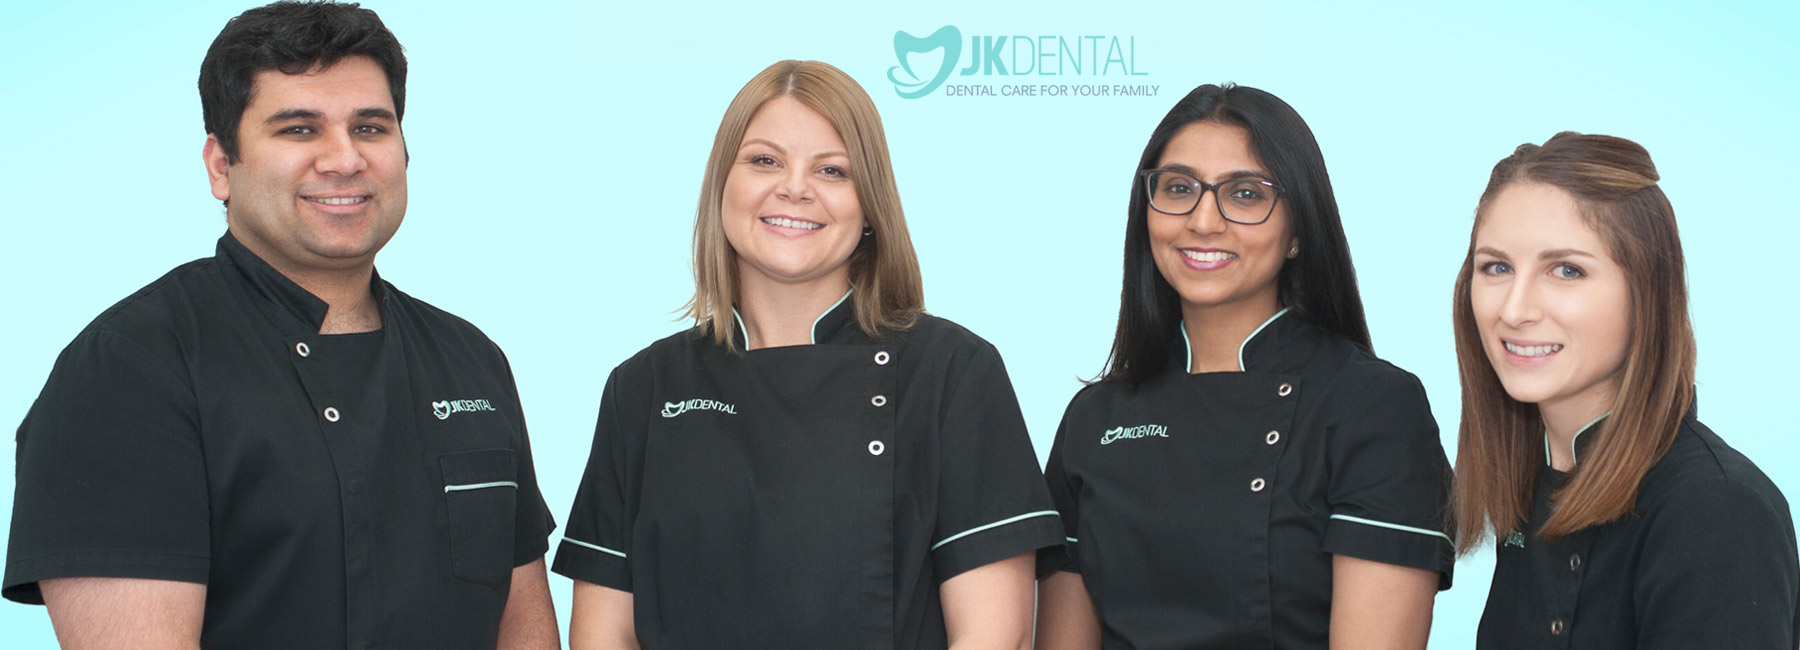 Doctor 2 | JK Dental